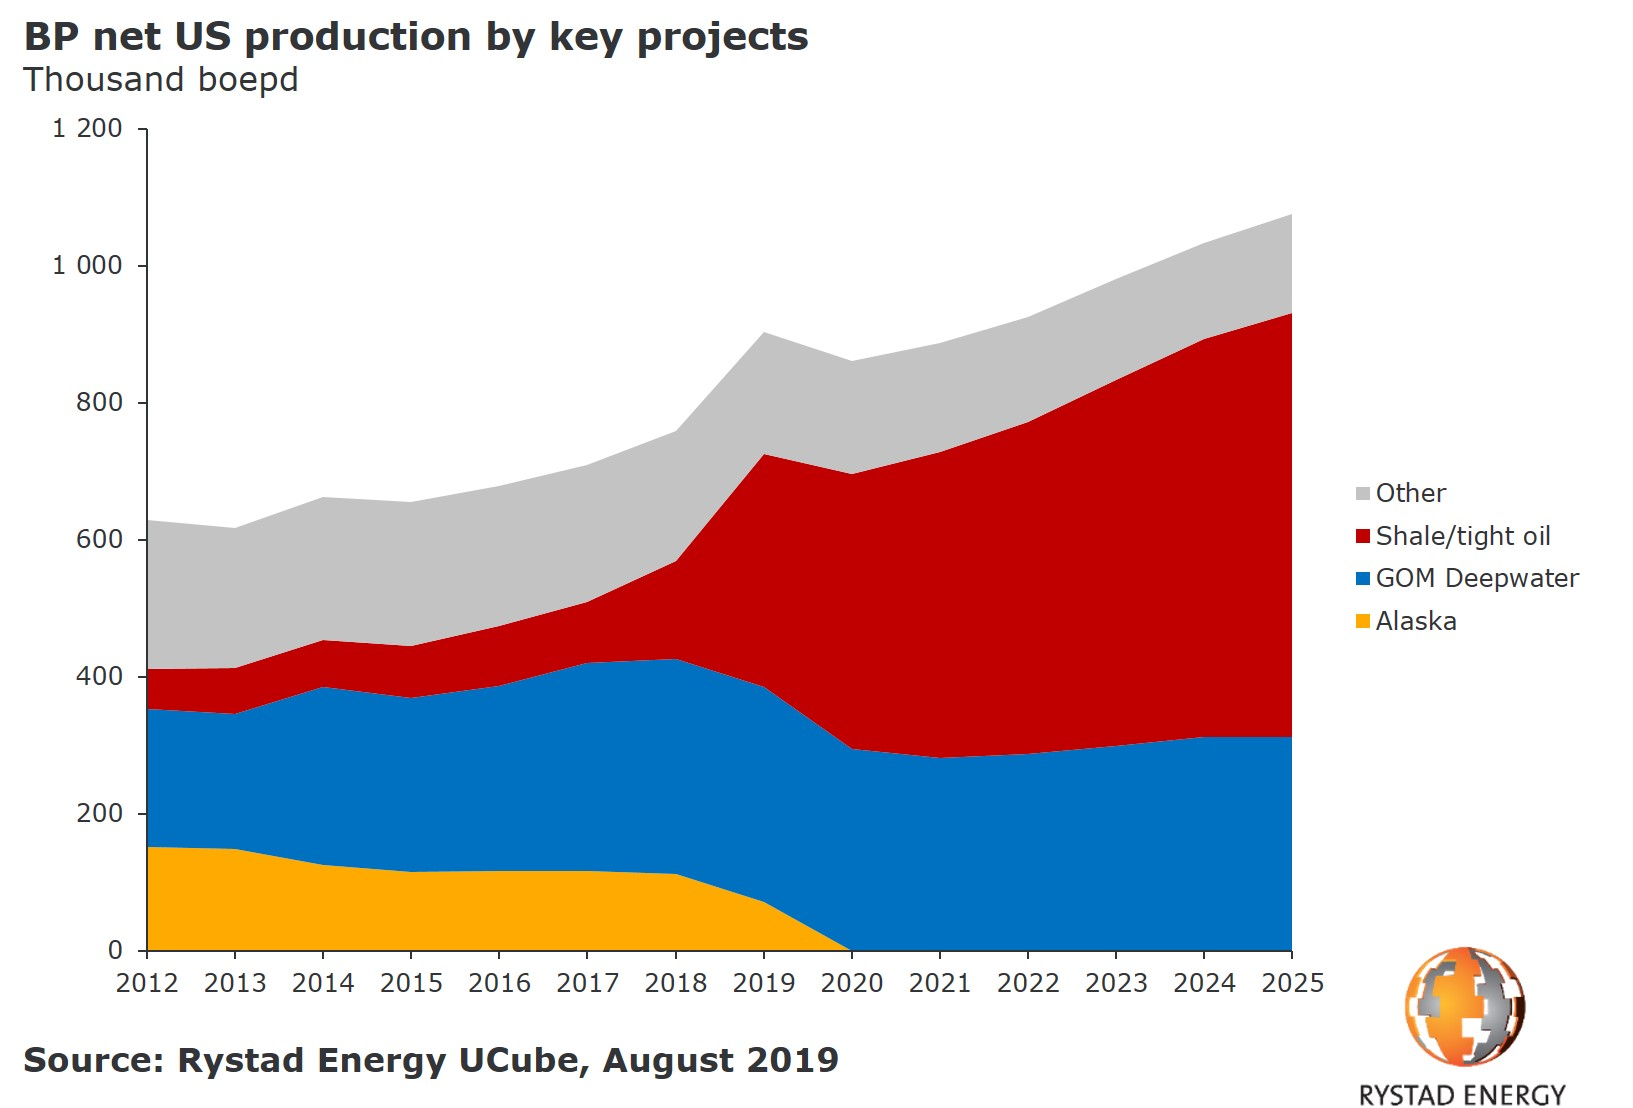 20190828_PR Chart BP US production by key projects 2012 2025.jpg